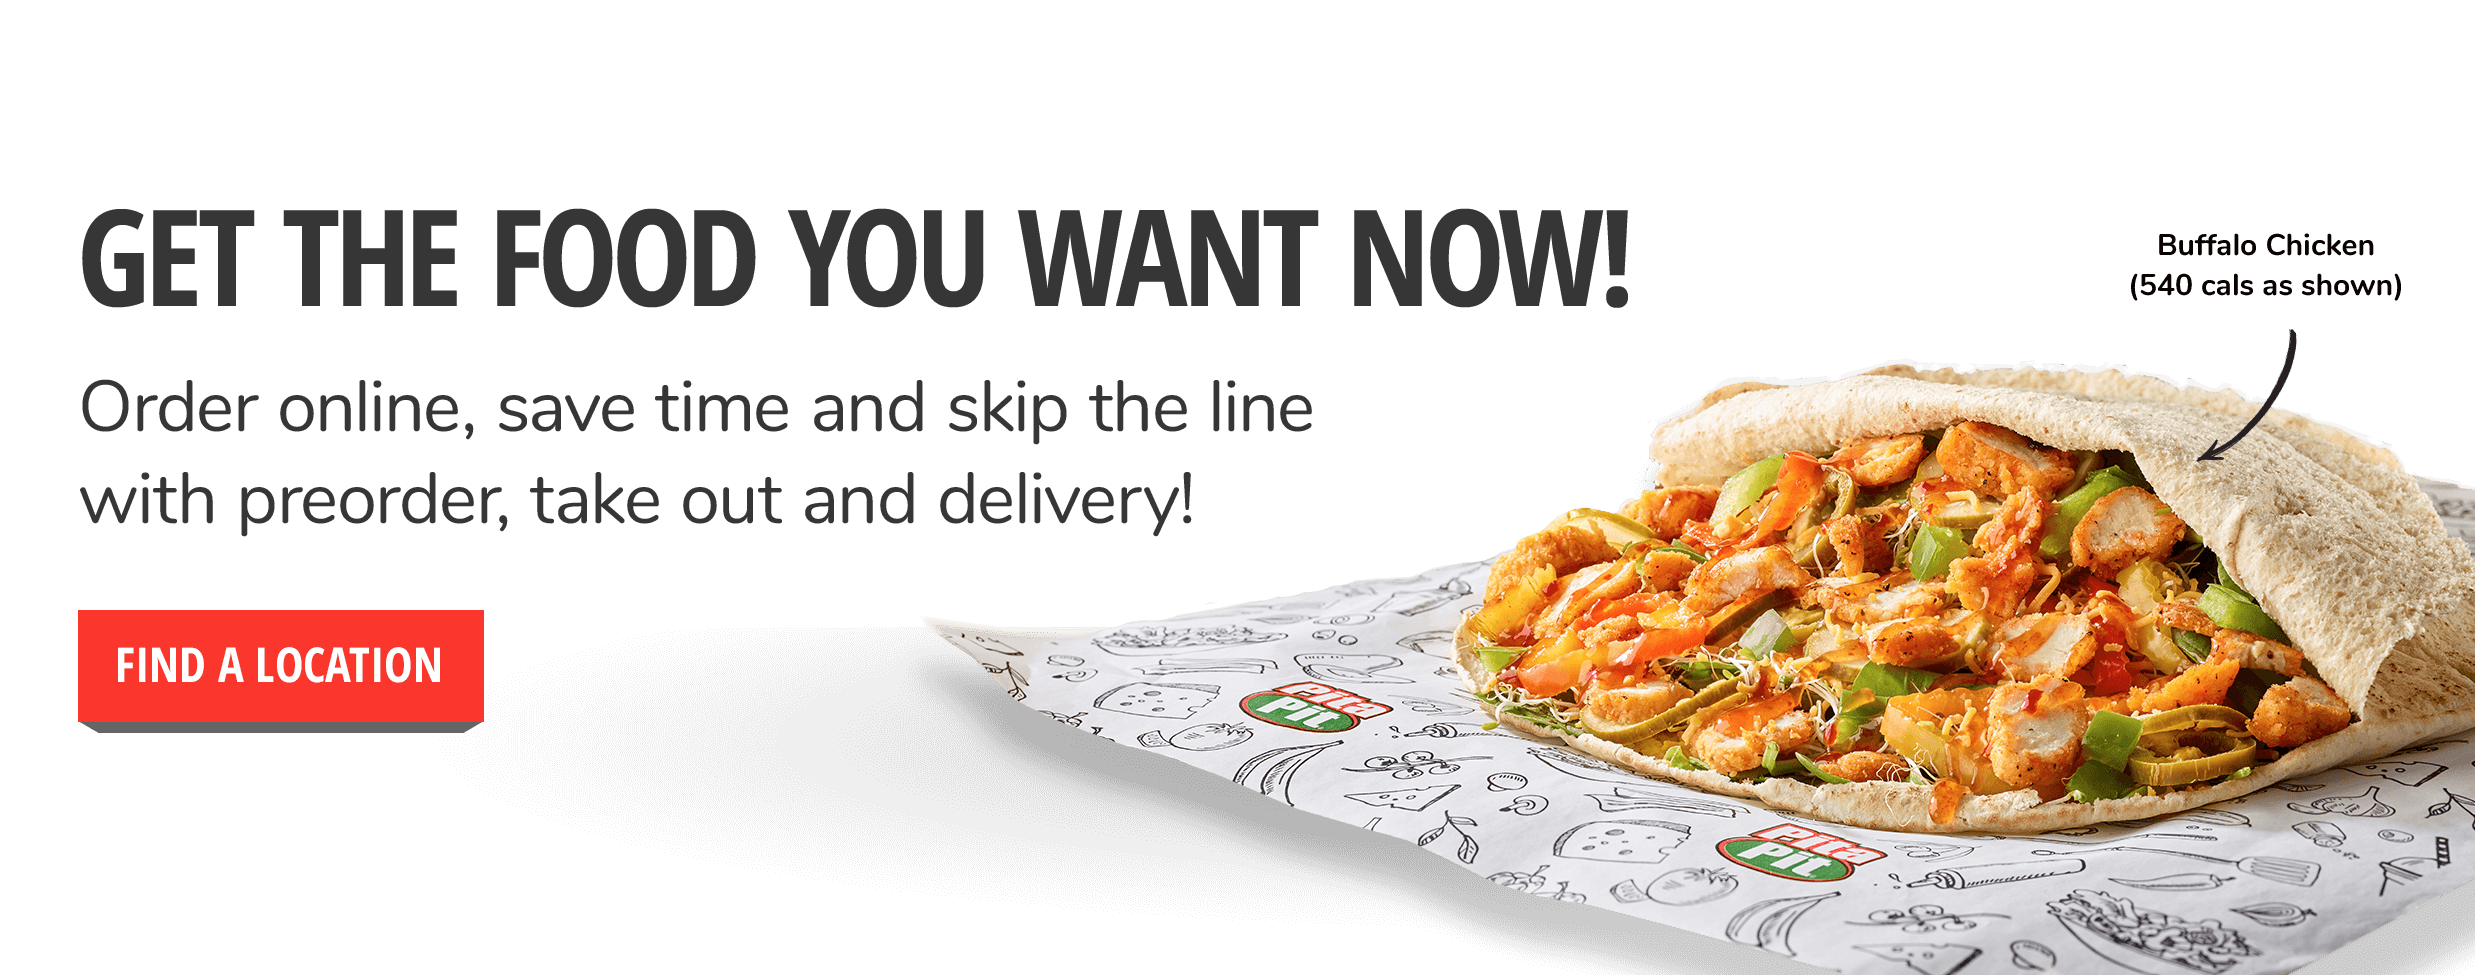 Get the food you want now!